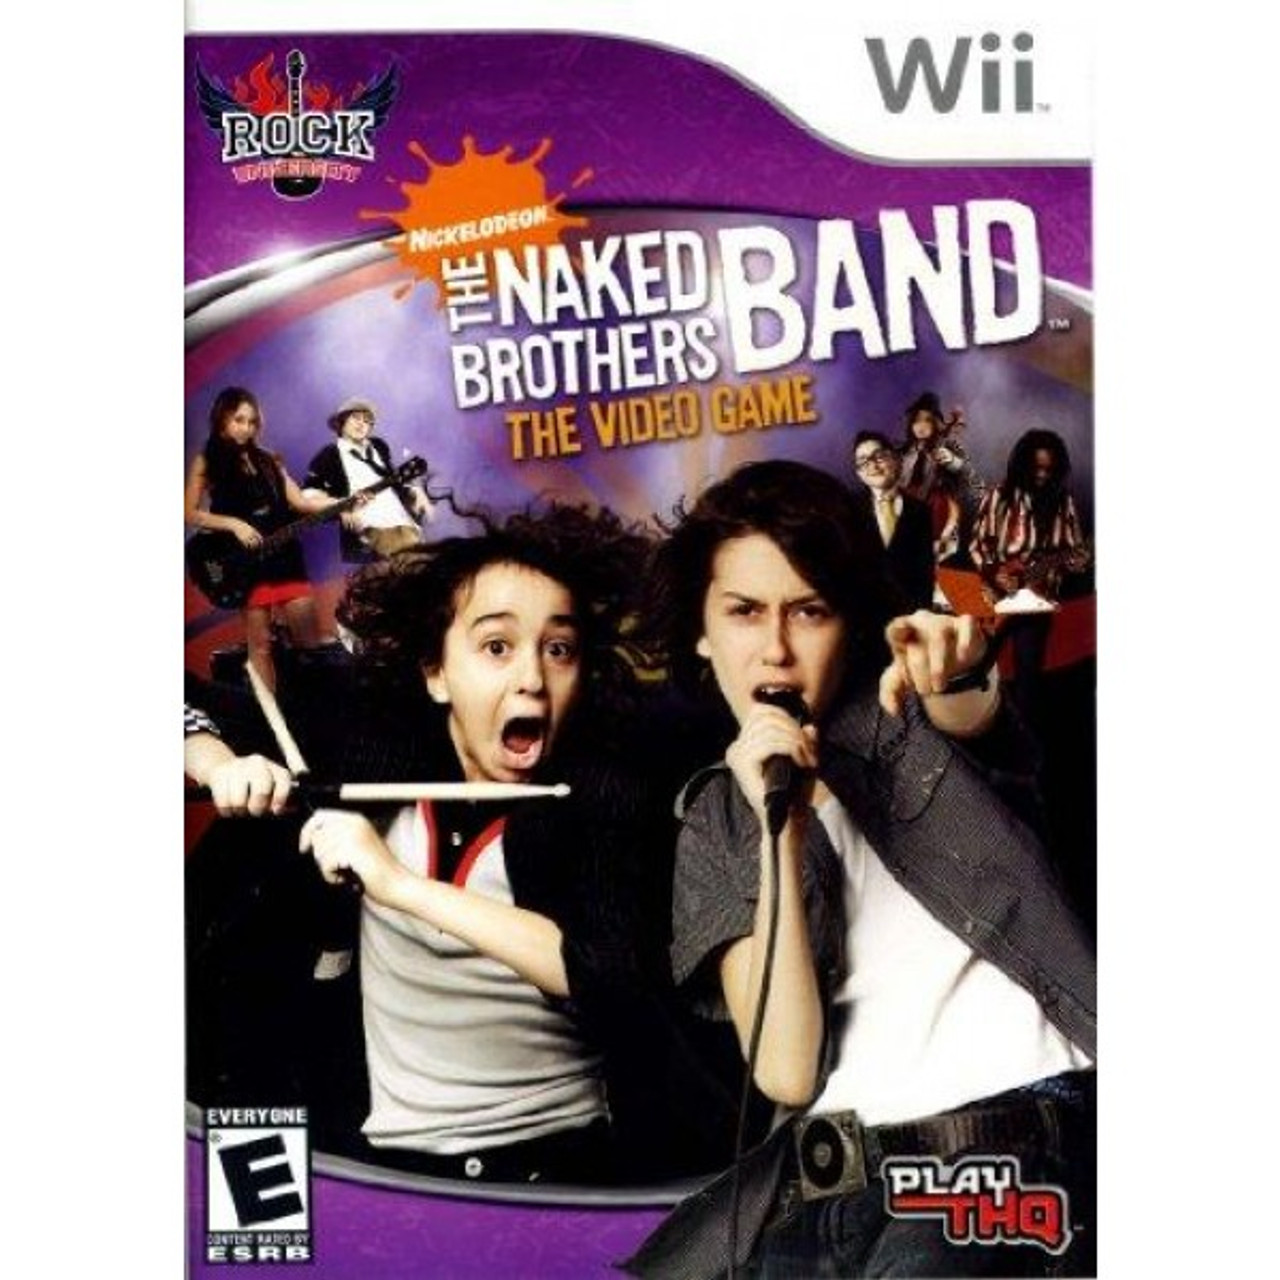 NEW SEALED NickelodeonTHE NAKEDBROTHERS BAND The Video